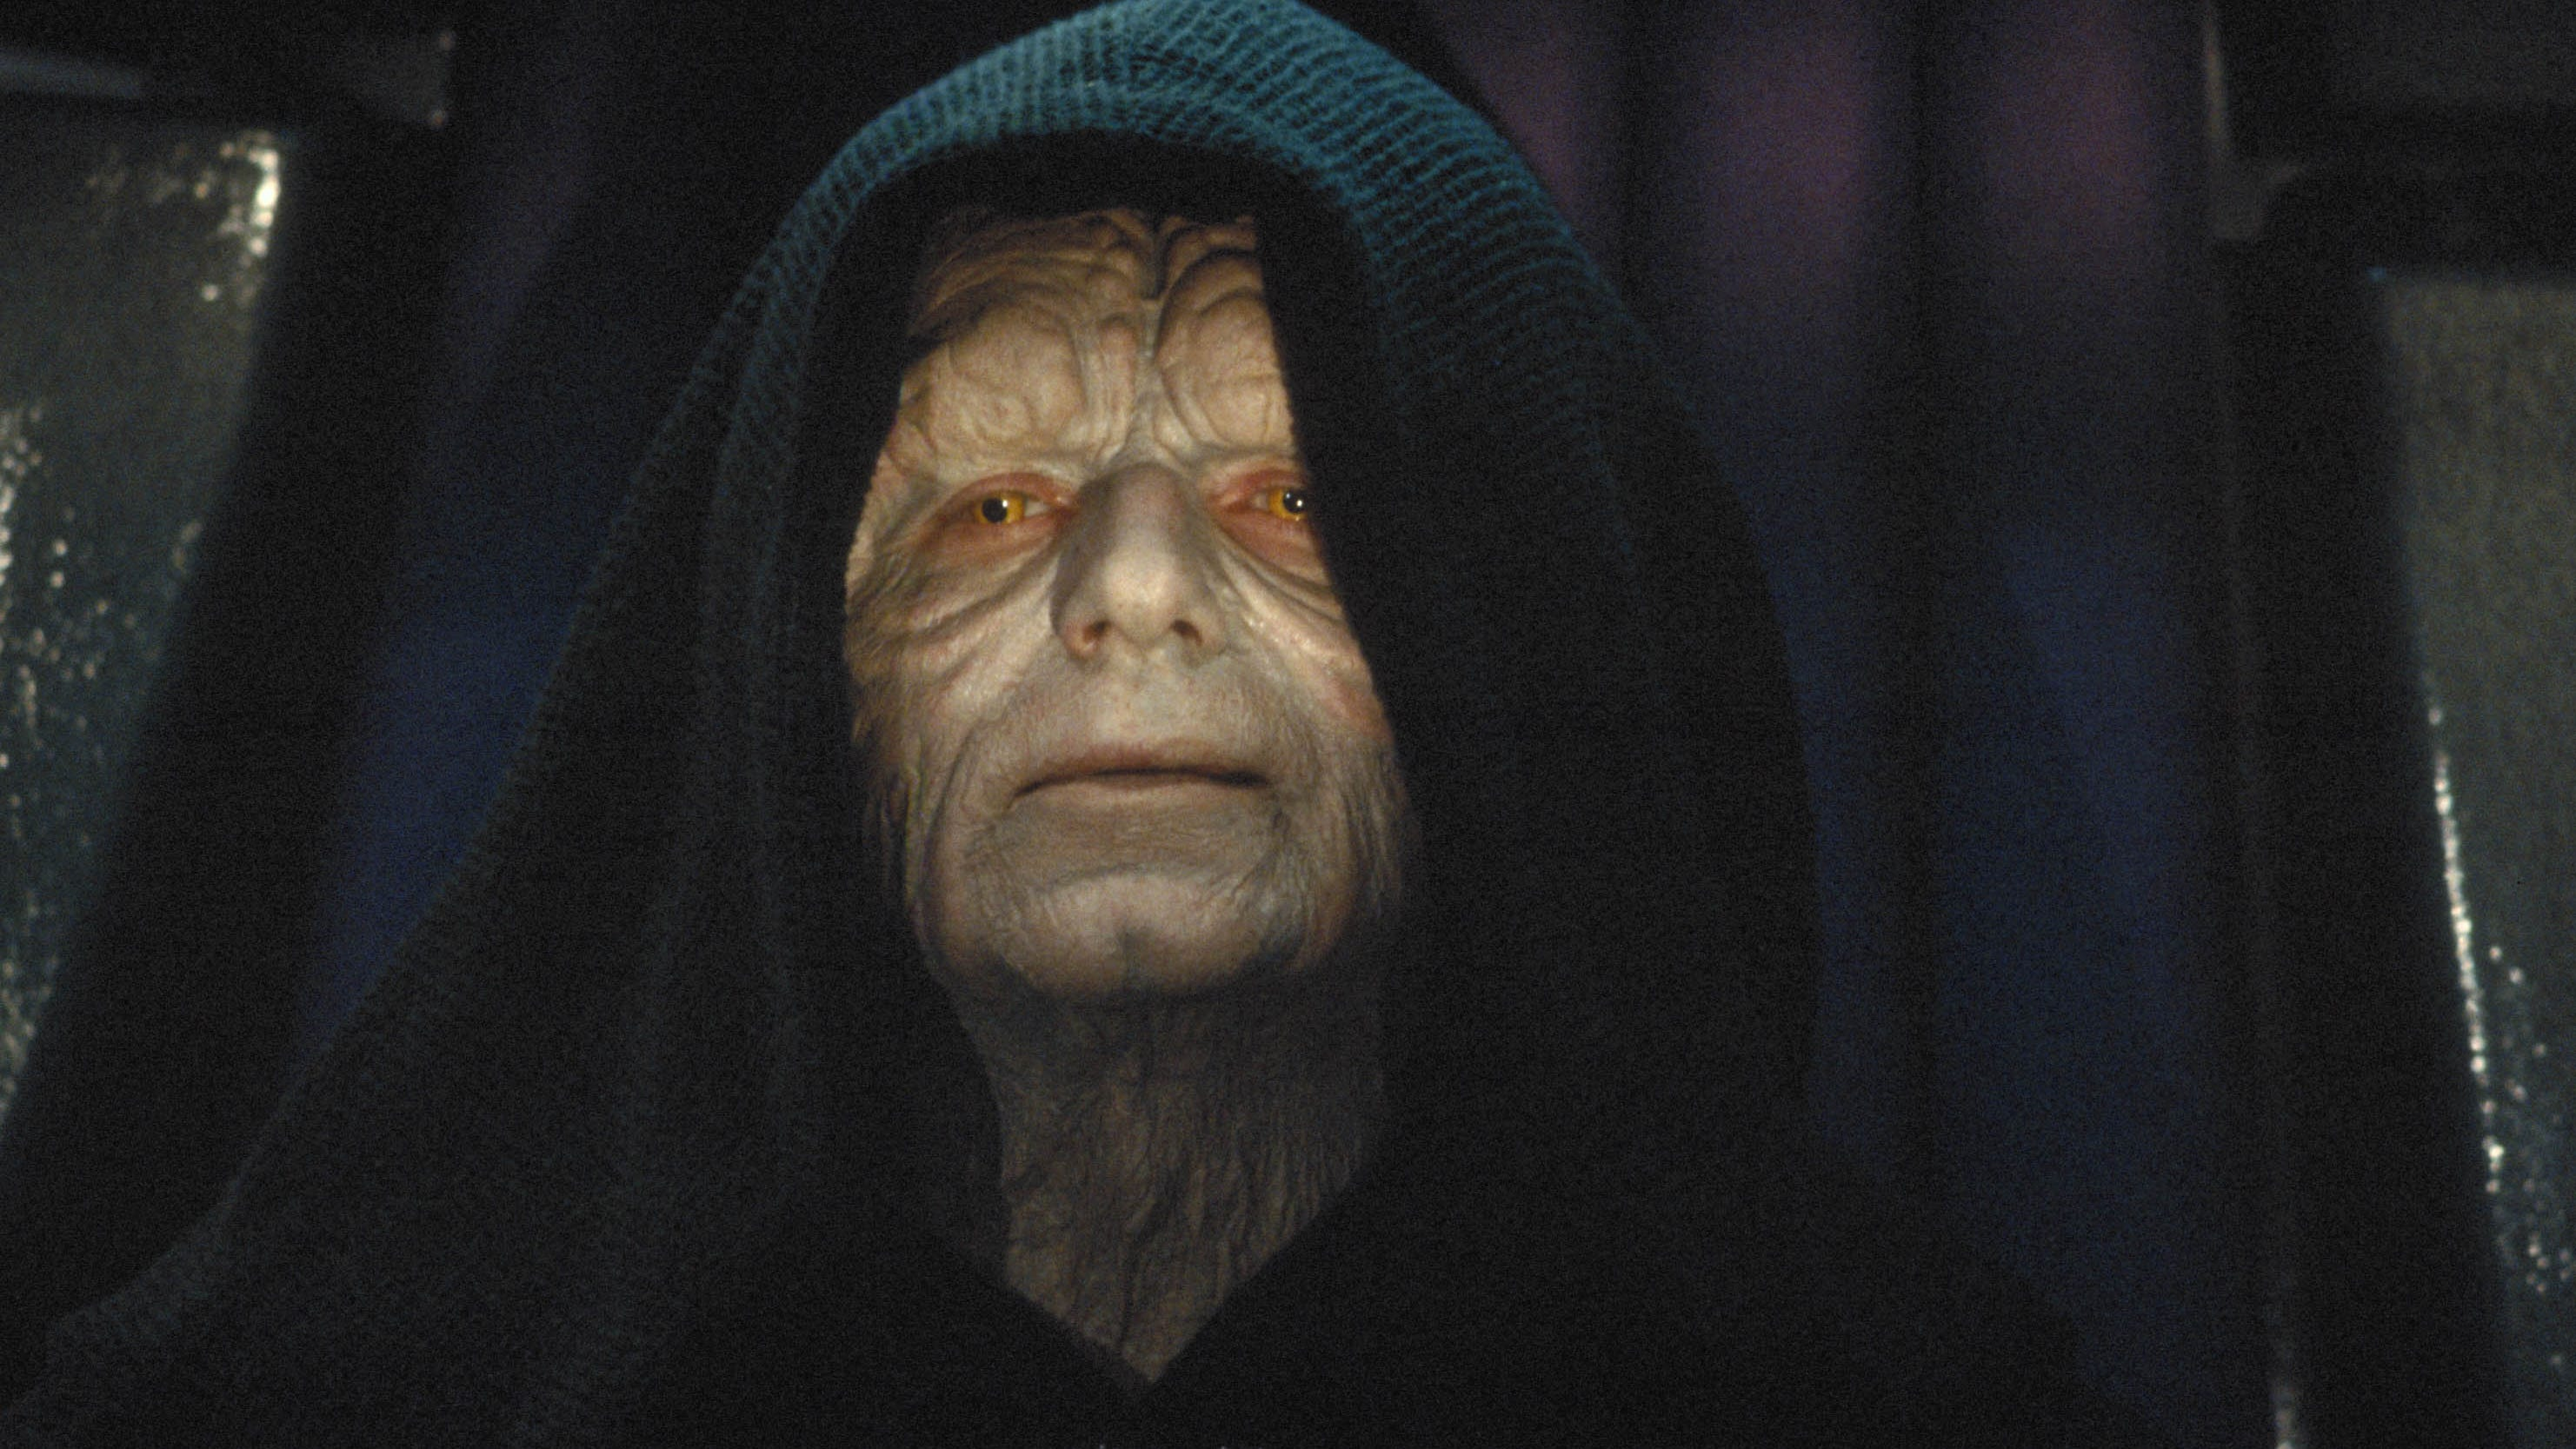 Star Wars Brings Back Emperor Palpatine For The Rise Of Skywalker